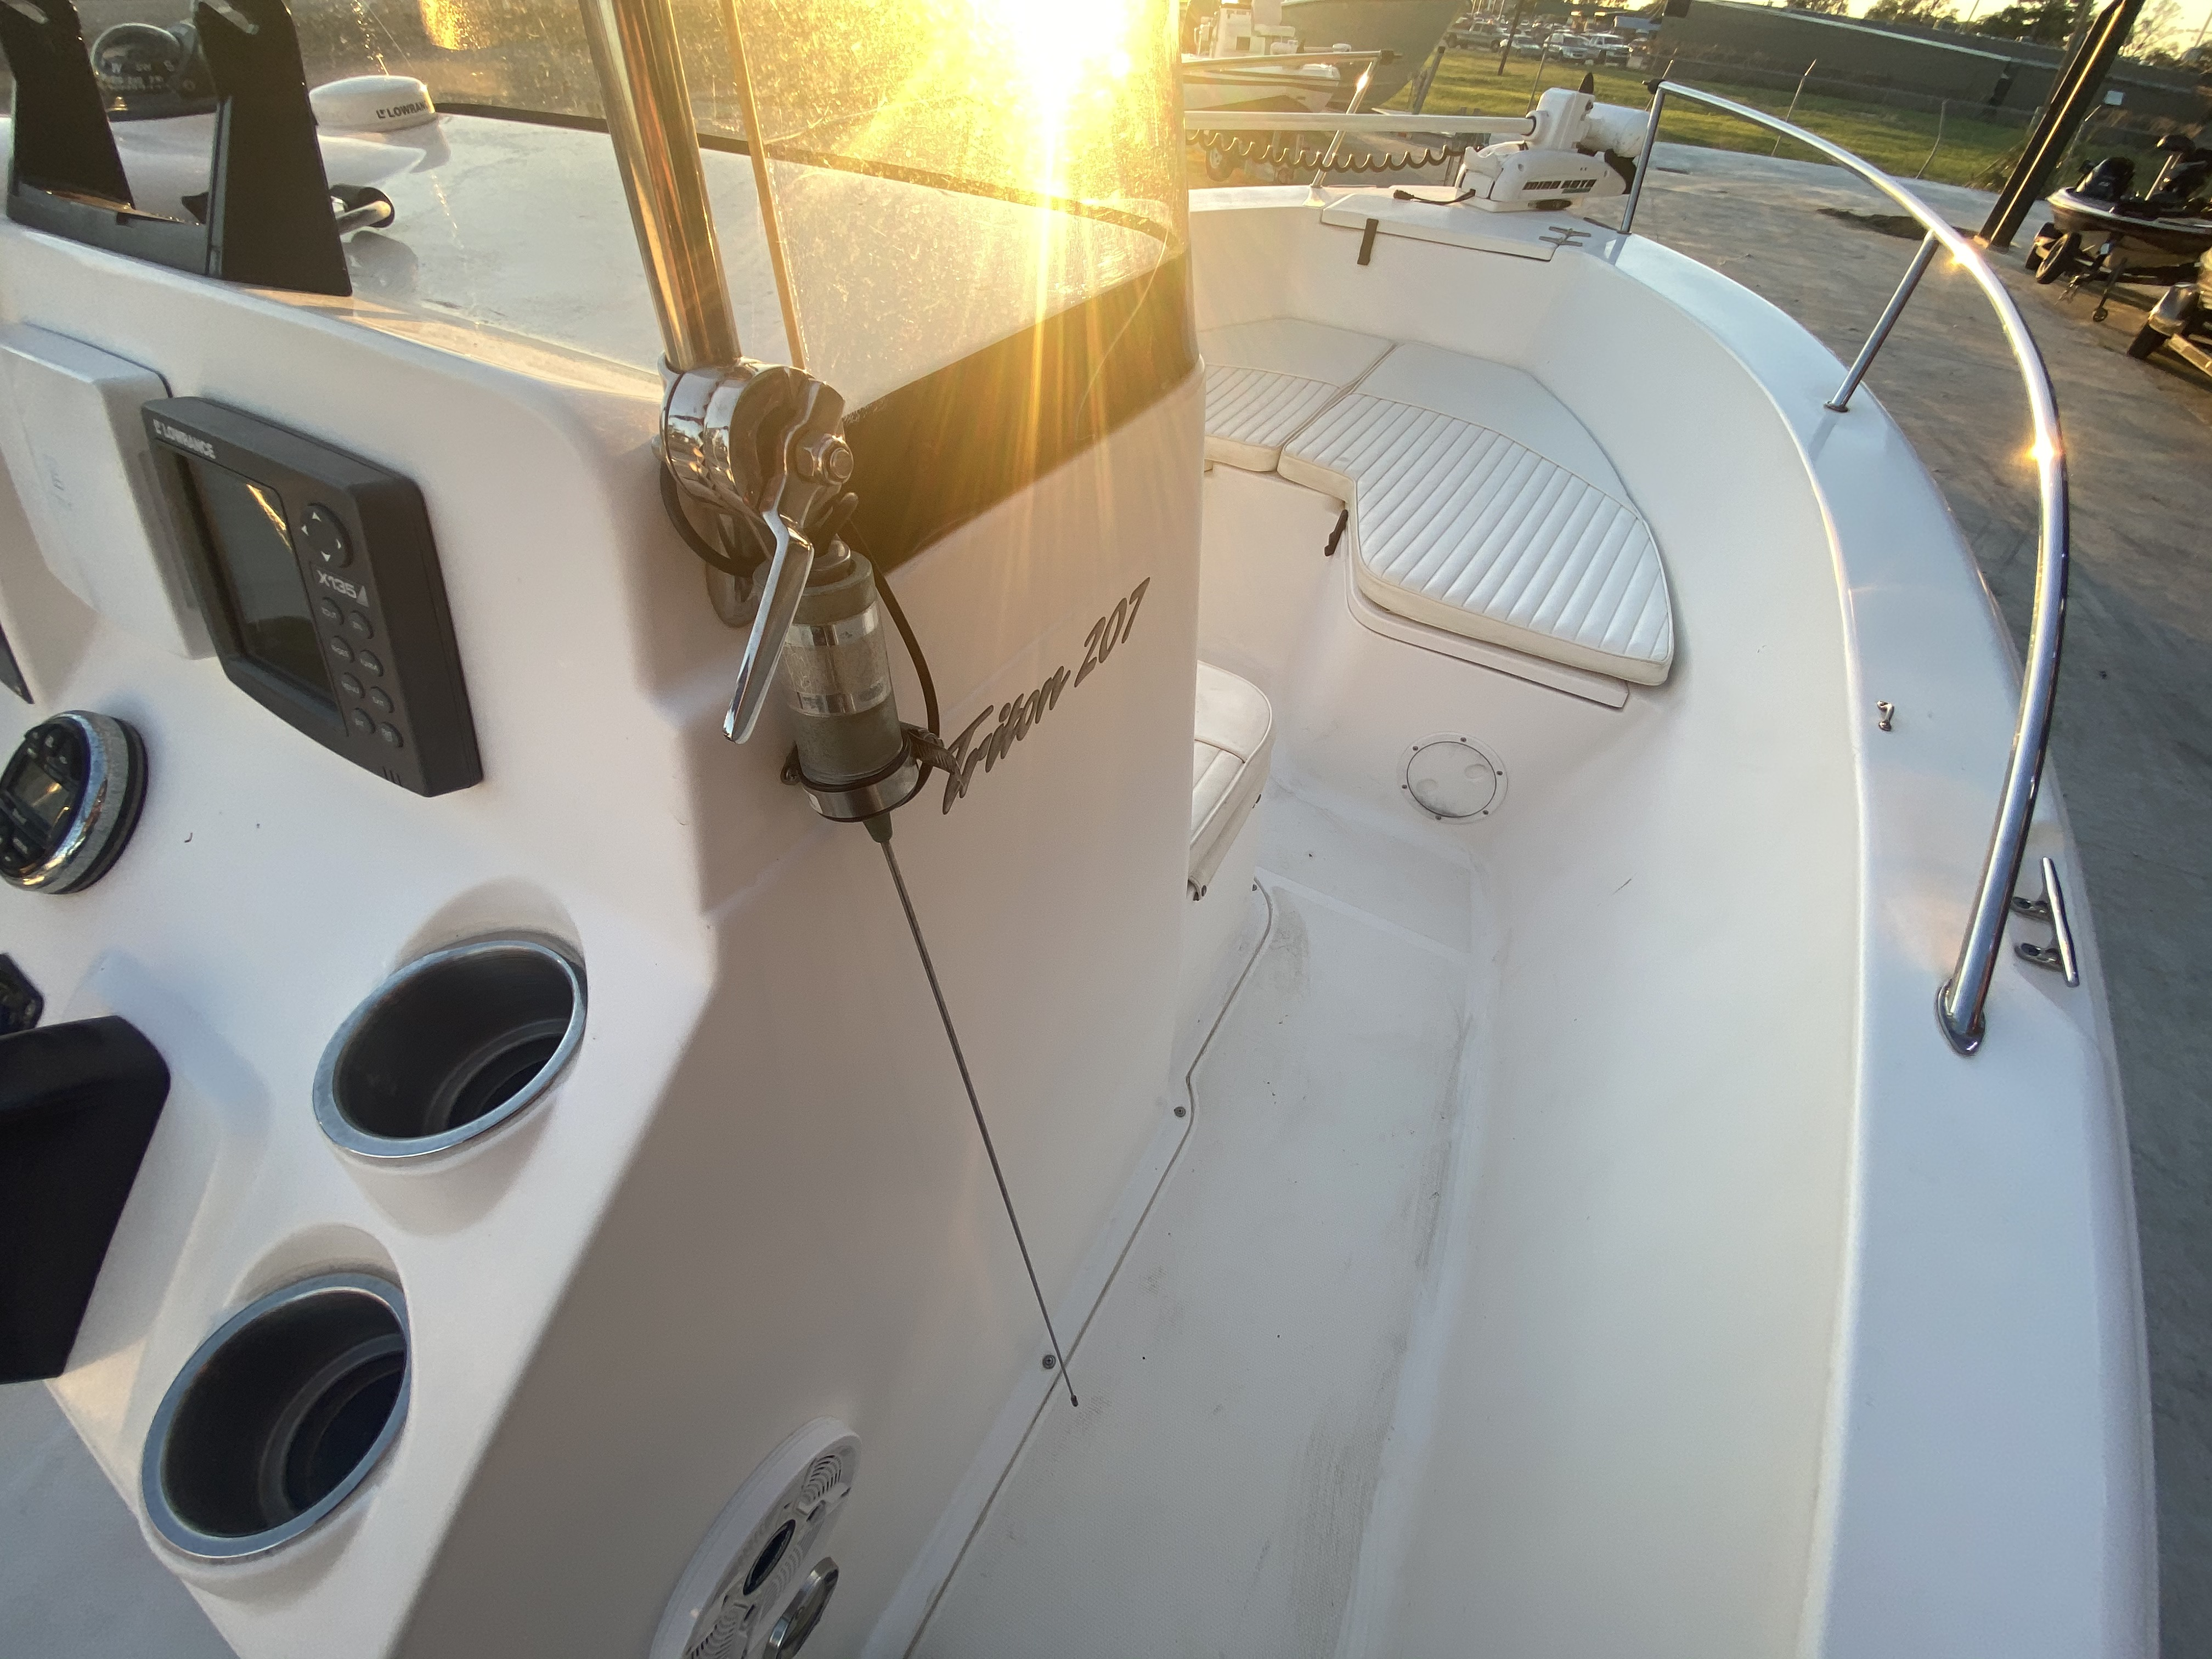 2007 Sea Hunt boat for sale, model of the boat is 207 Triton & Image # 19 of 28